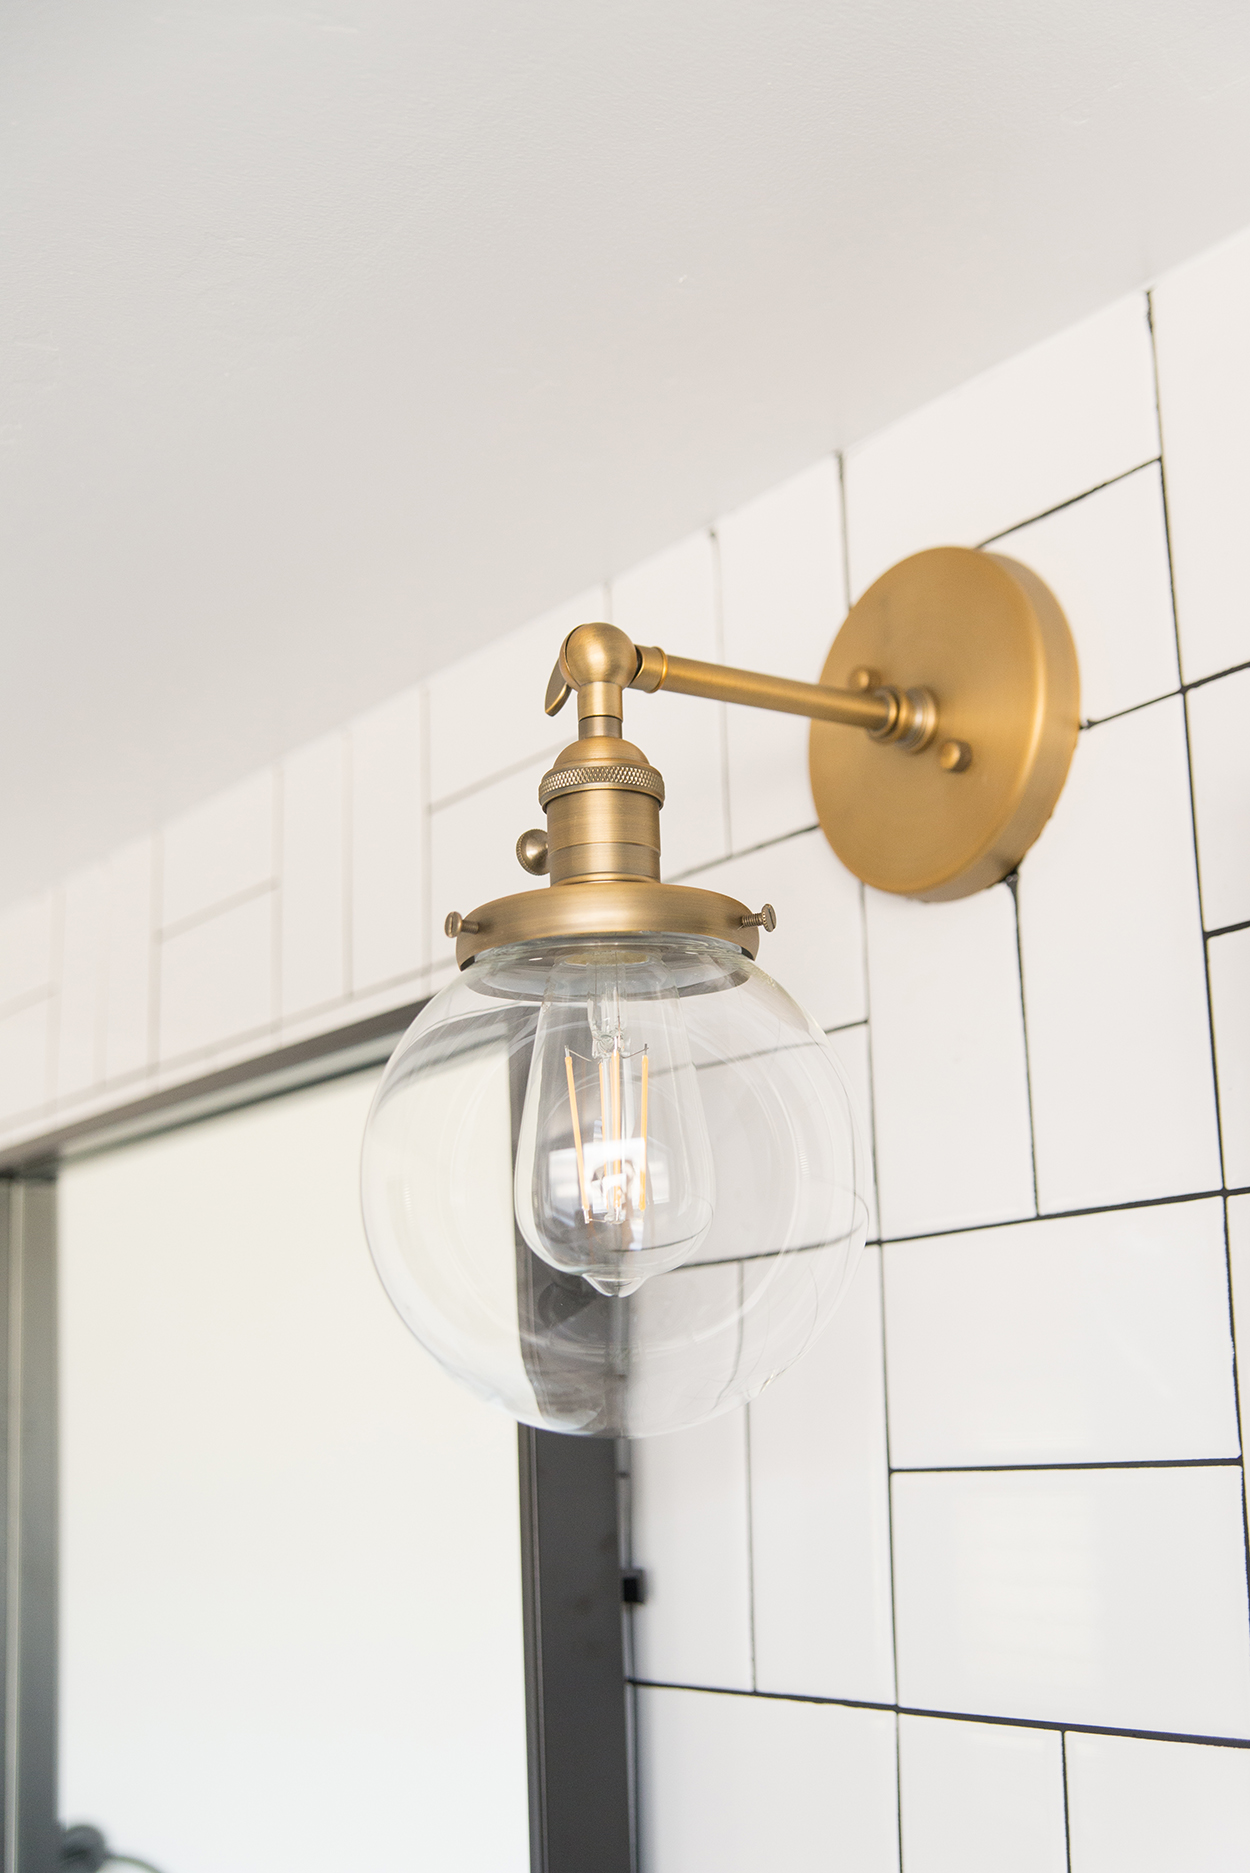 Antique brass light fixture with globe glass and an Edison bulb on a white tiled wall